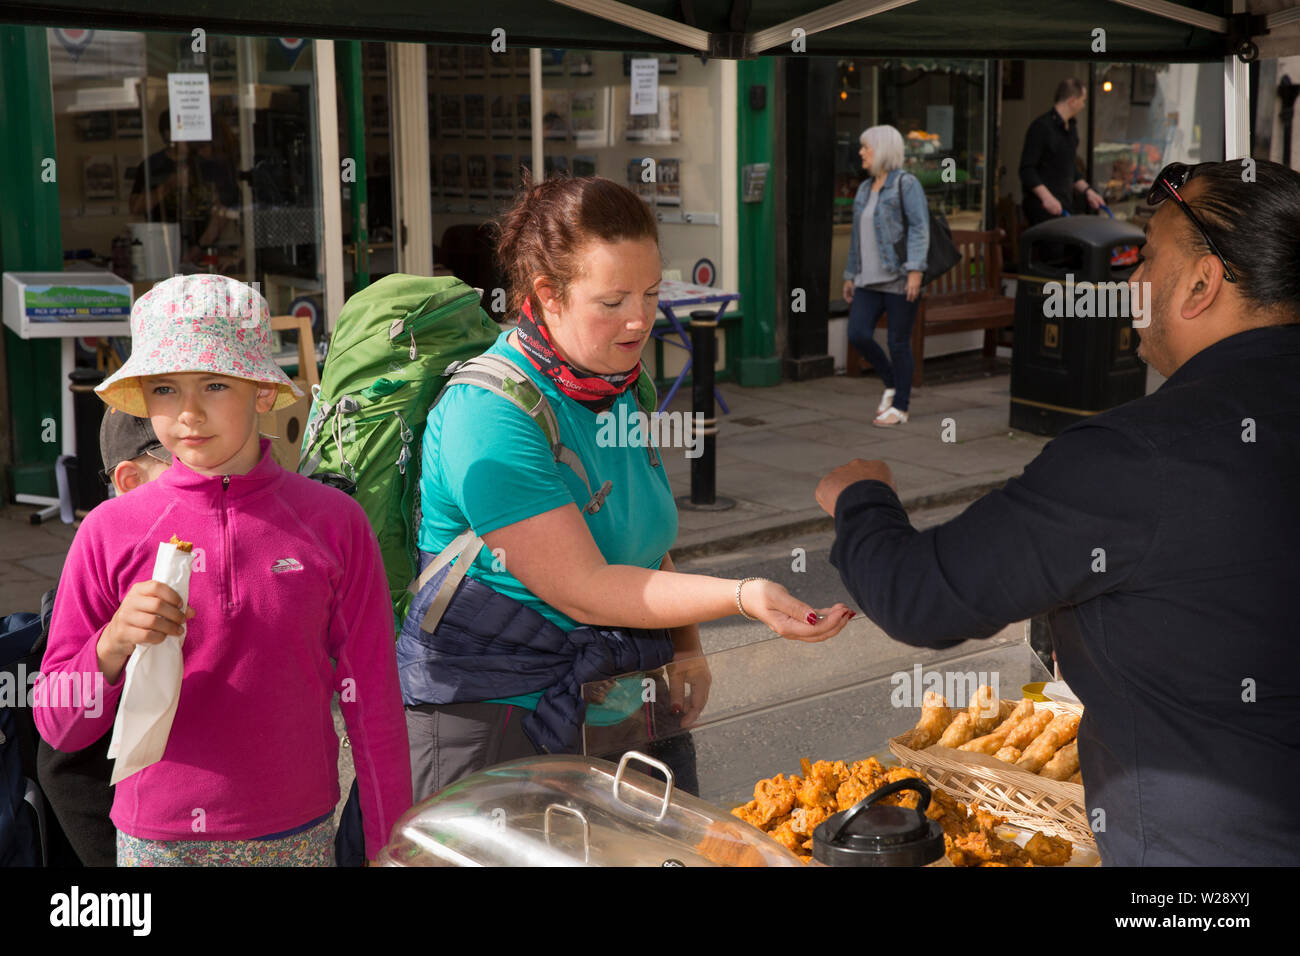 UK, Cumbria, Sedbergh, Main Street, monthly artizan's market, woman and child buying Indian takeaway food from roadside stall Stock Photo